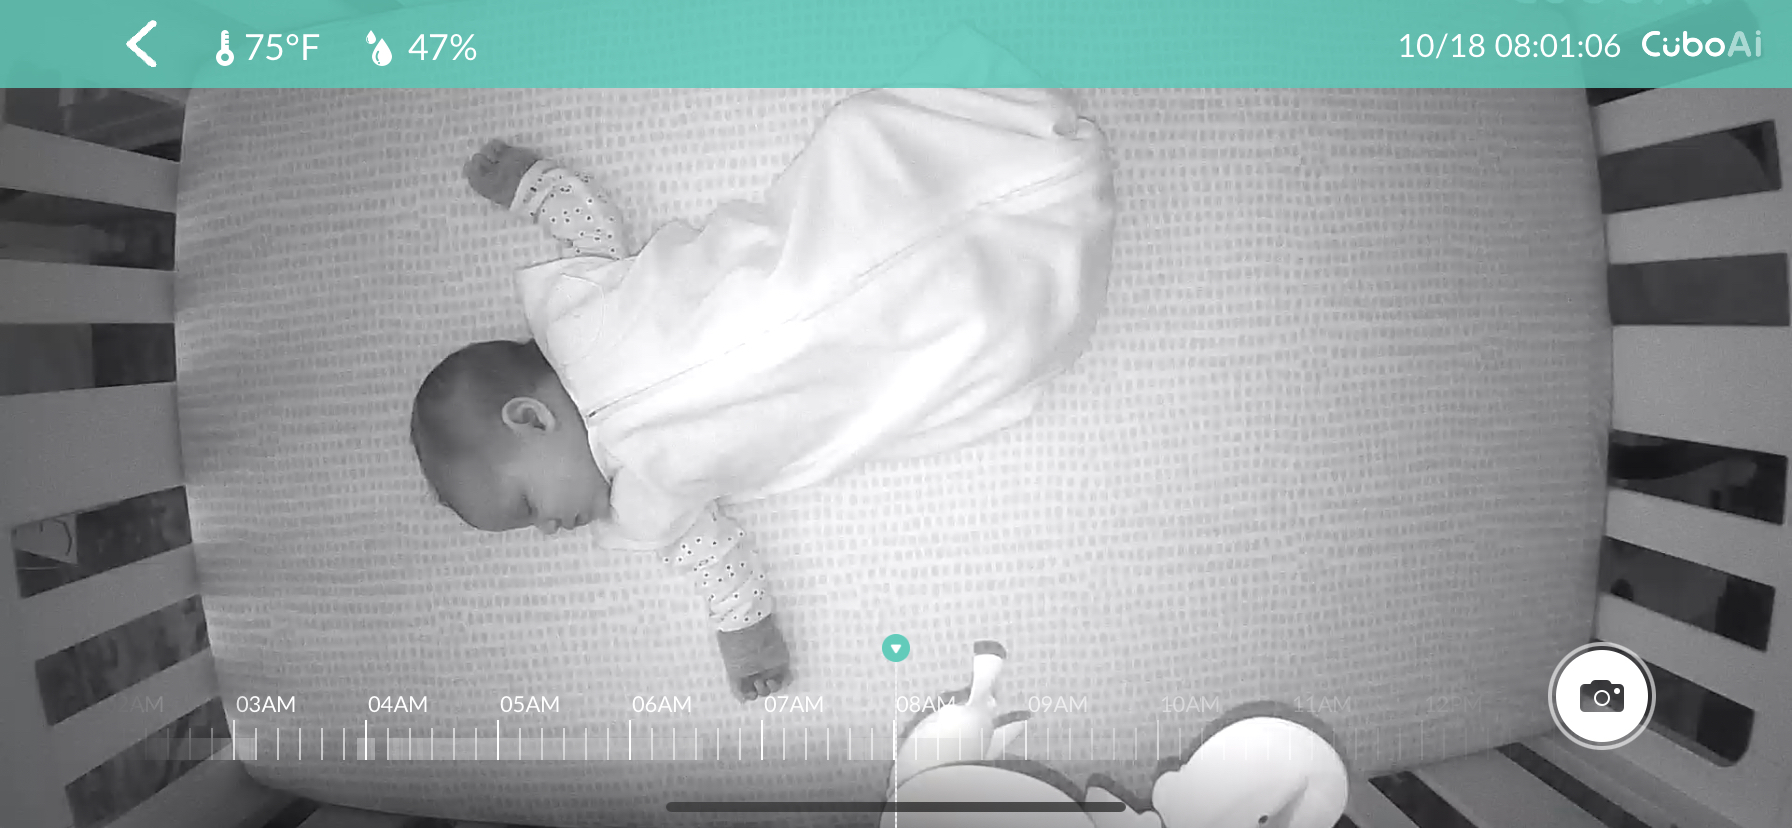 A Smart Baby Monitor | Top 5 Amazon Baby Registry Must-Haves